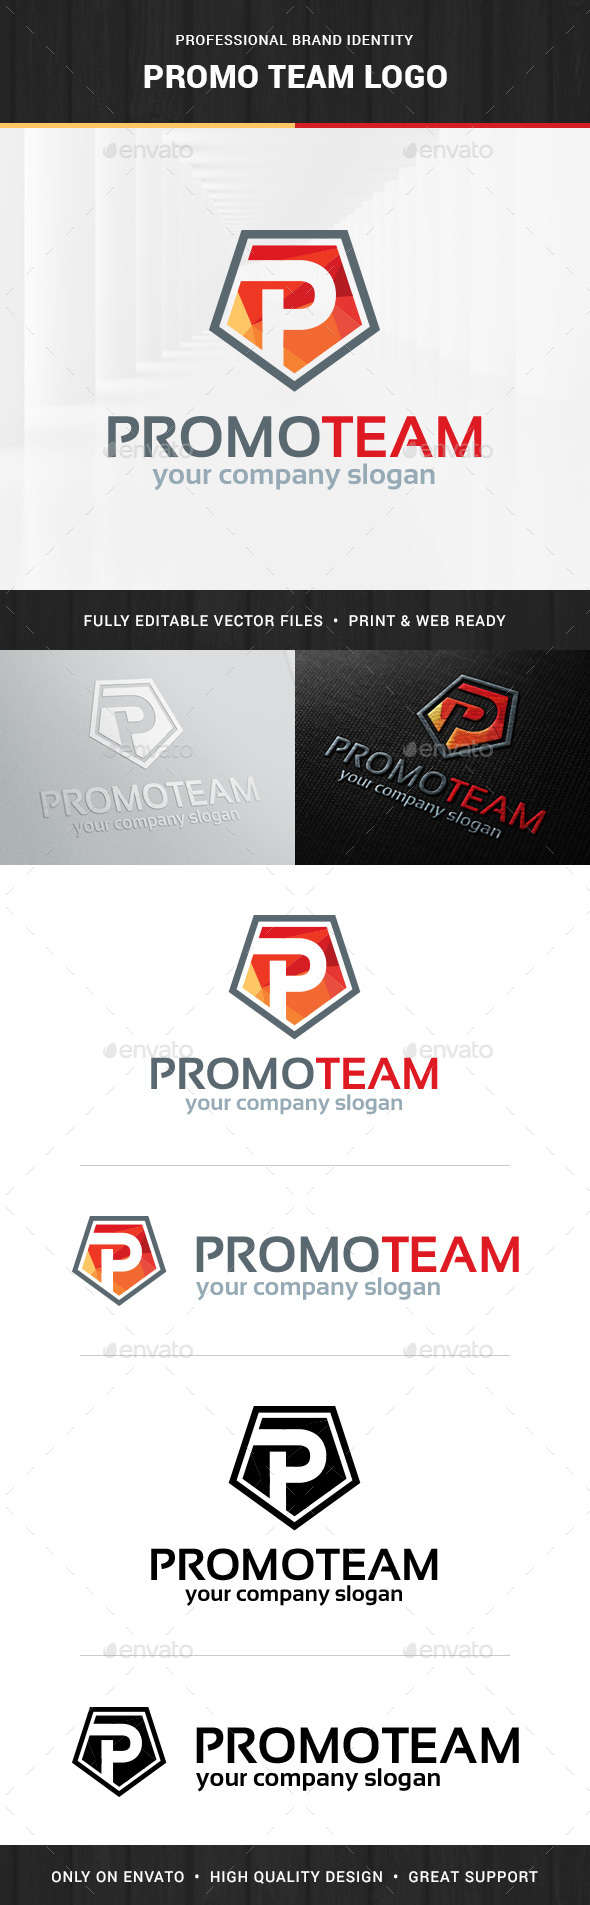 P graphics designs templates from graphicriver sciox Images